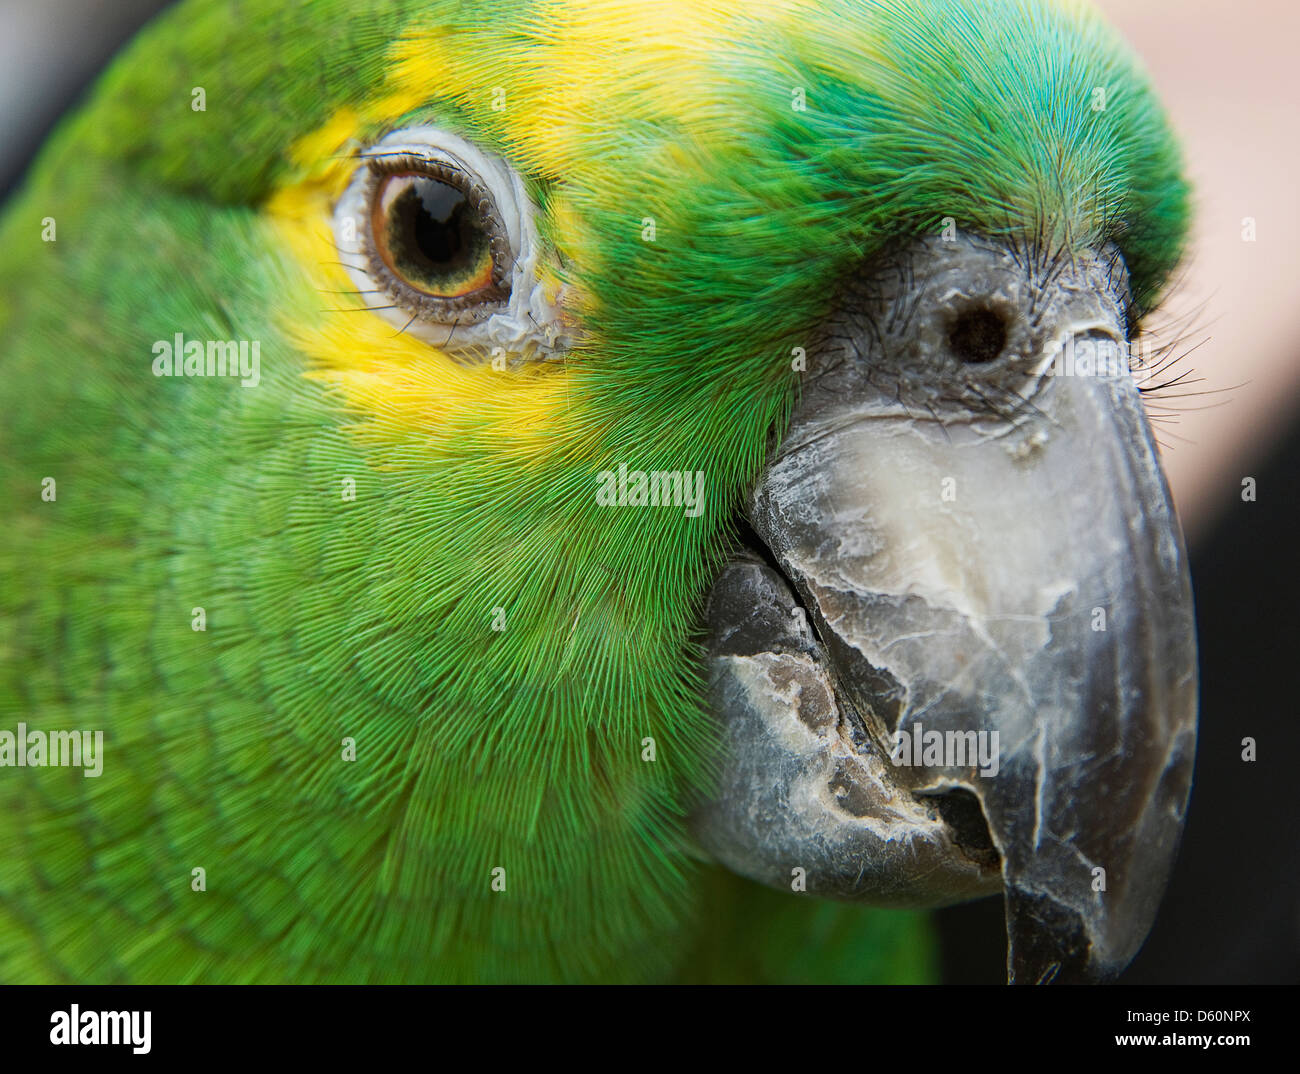 A portrait of a blue fronted fronted amazon parrot. Stock Photo